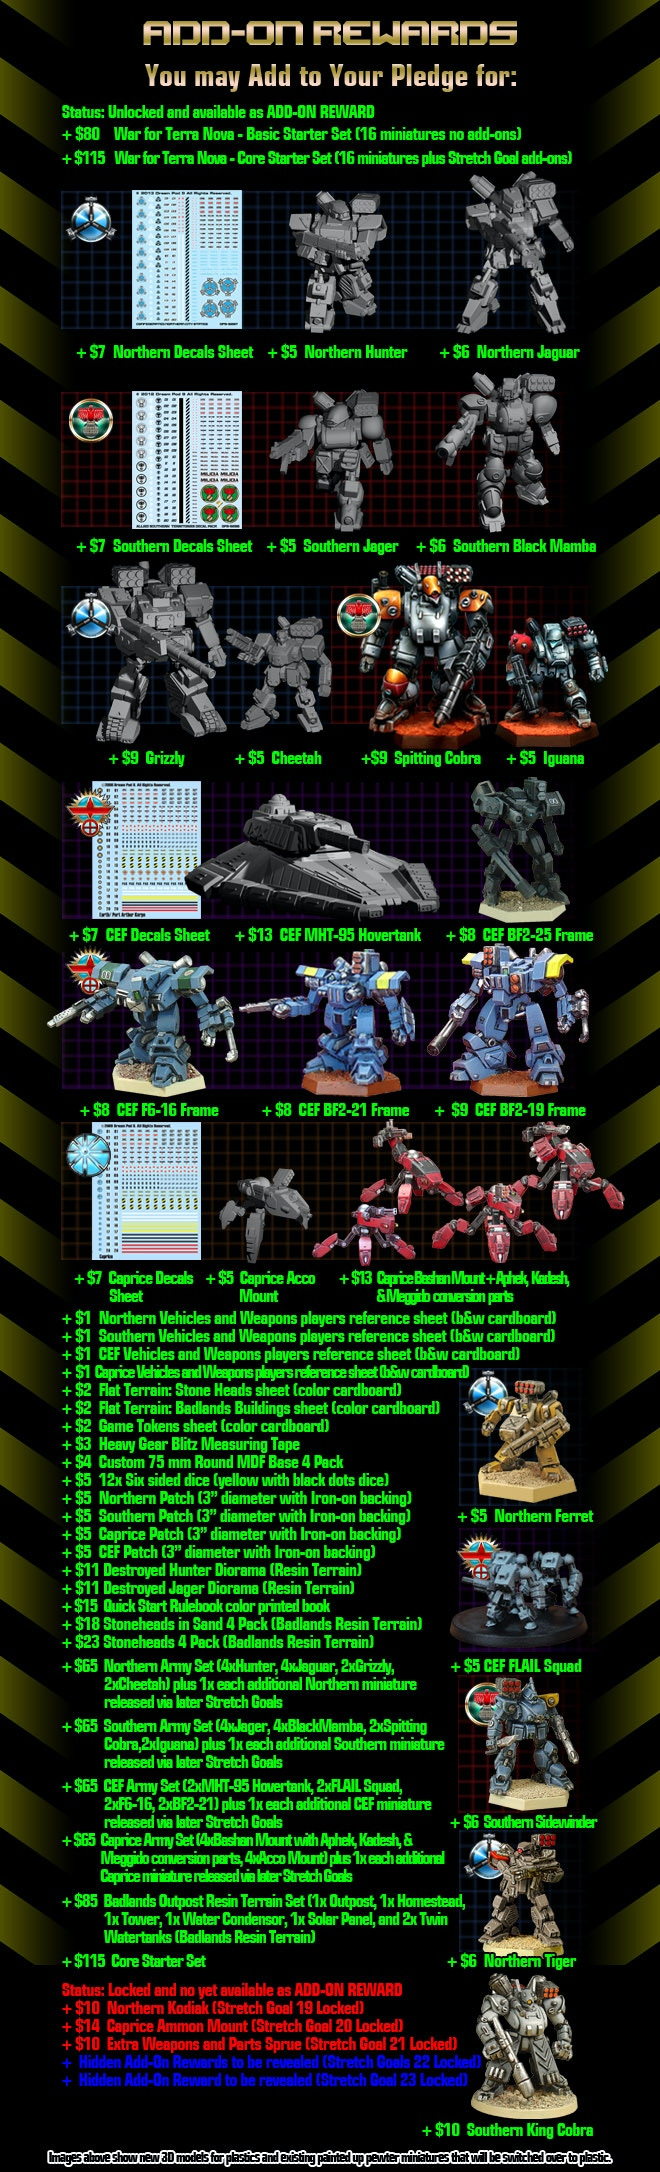 Revised Add-on Rewards Graphic with Stretch Goal 18 Unlocked